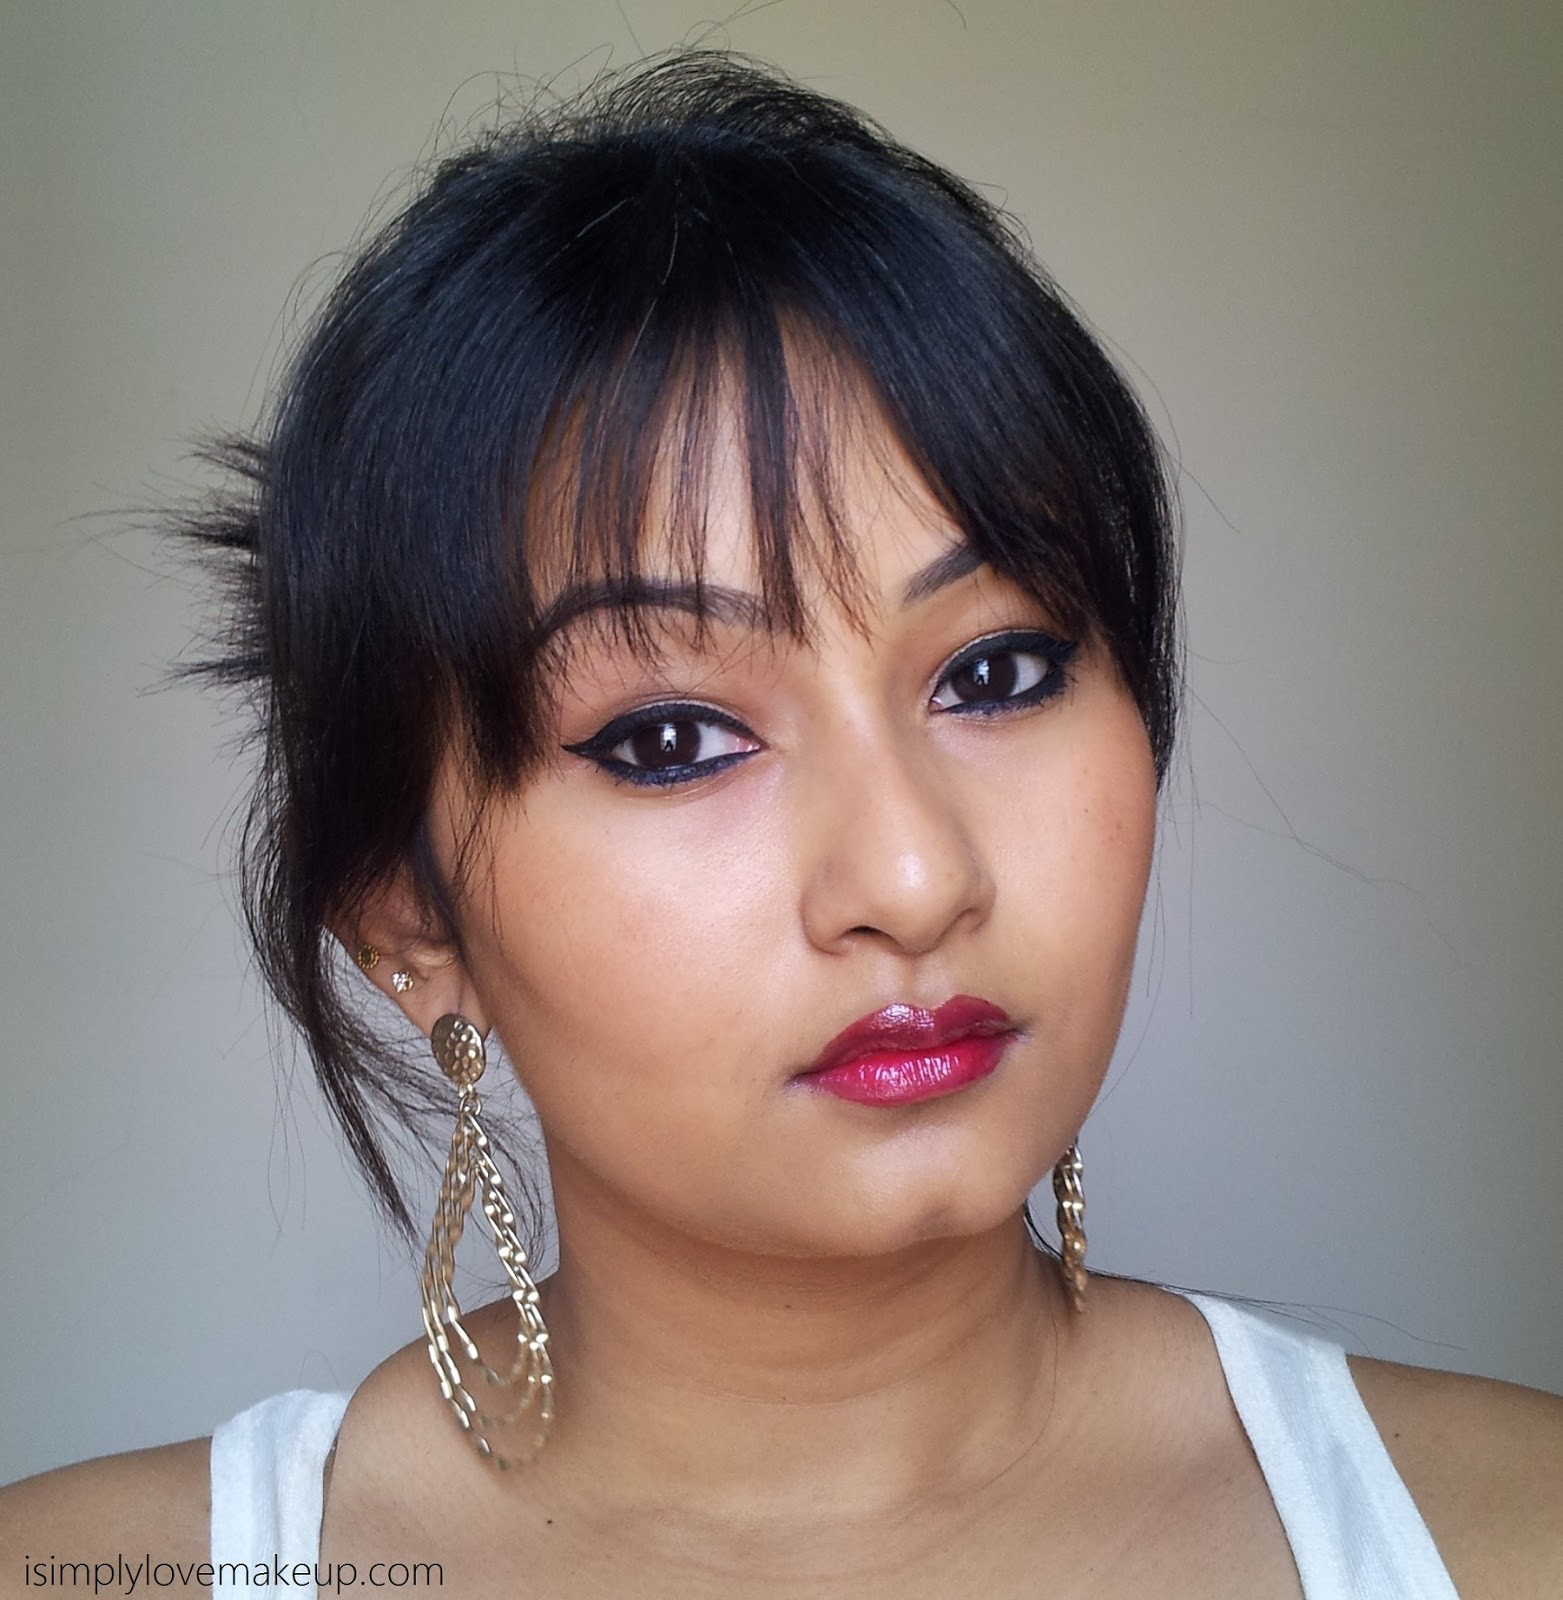 L'Oreal Paris Shine Caresse Lip Color in Eve - Swatches & Review